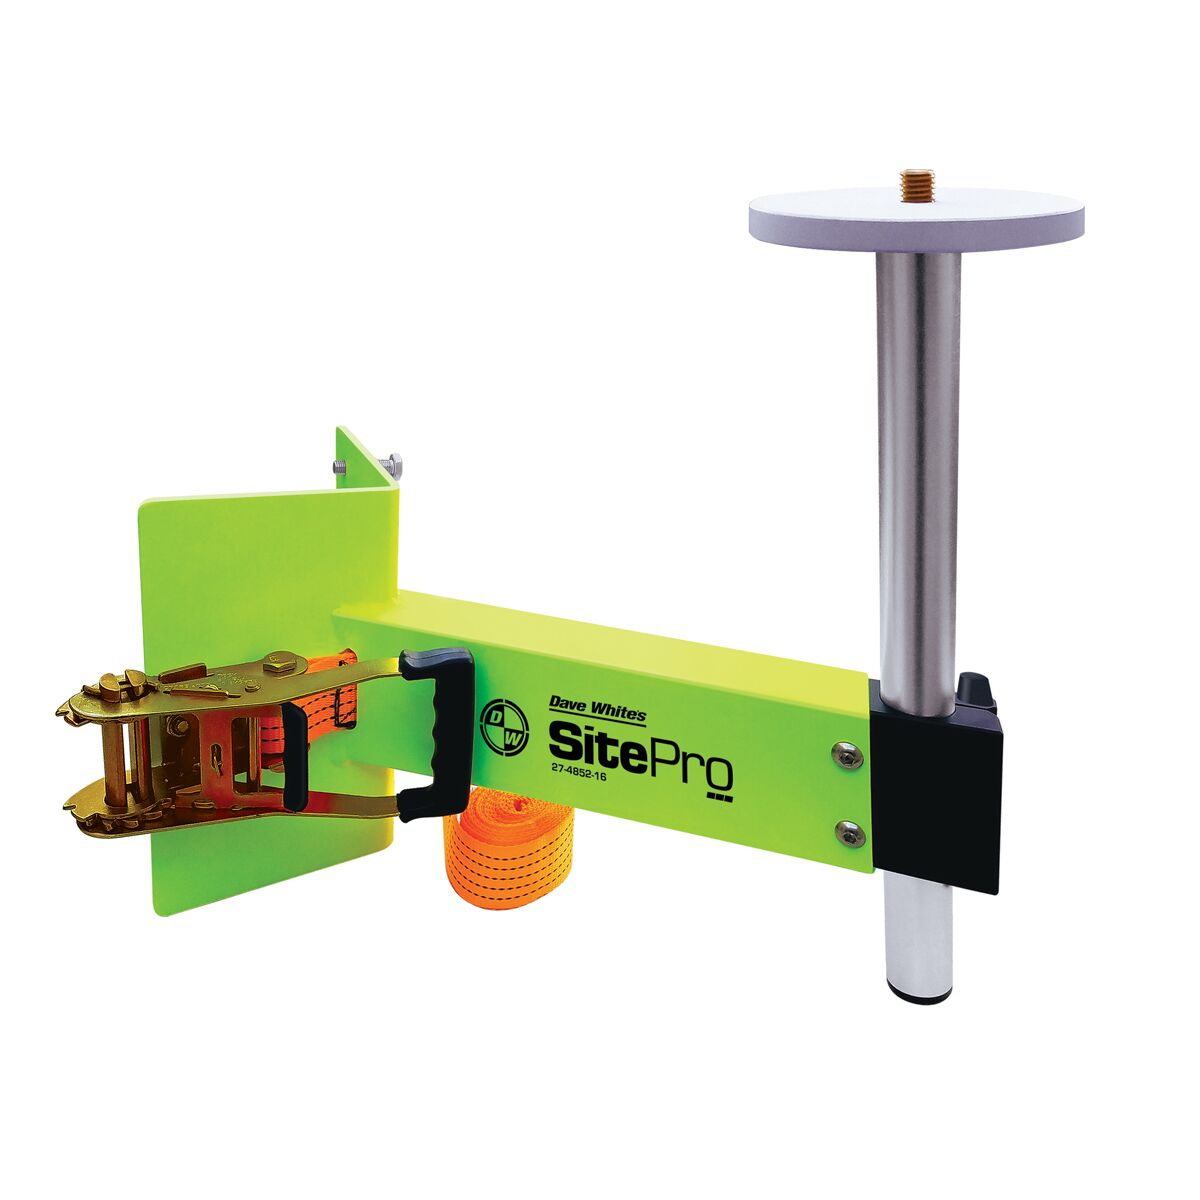 SitePro Heavy Duty Column Clamp 5/8x11 Thread